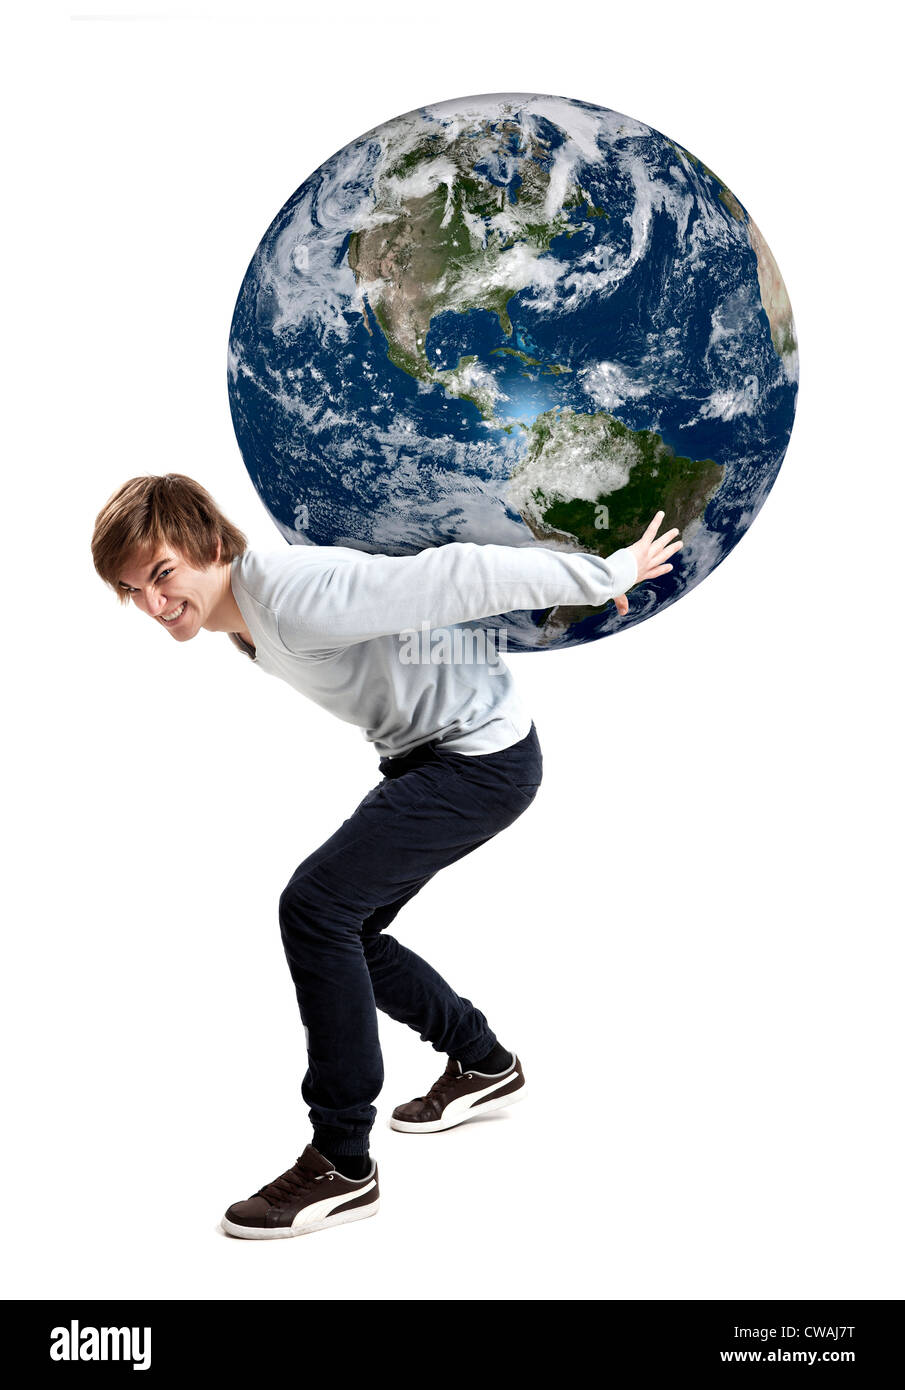 Handsome young man caring the planet earth on its backs, isolated on white Stock Photo